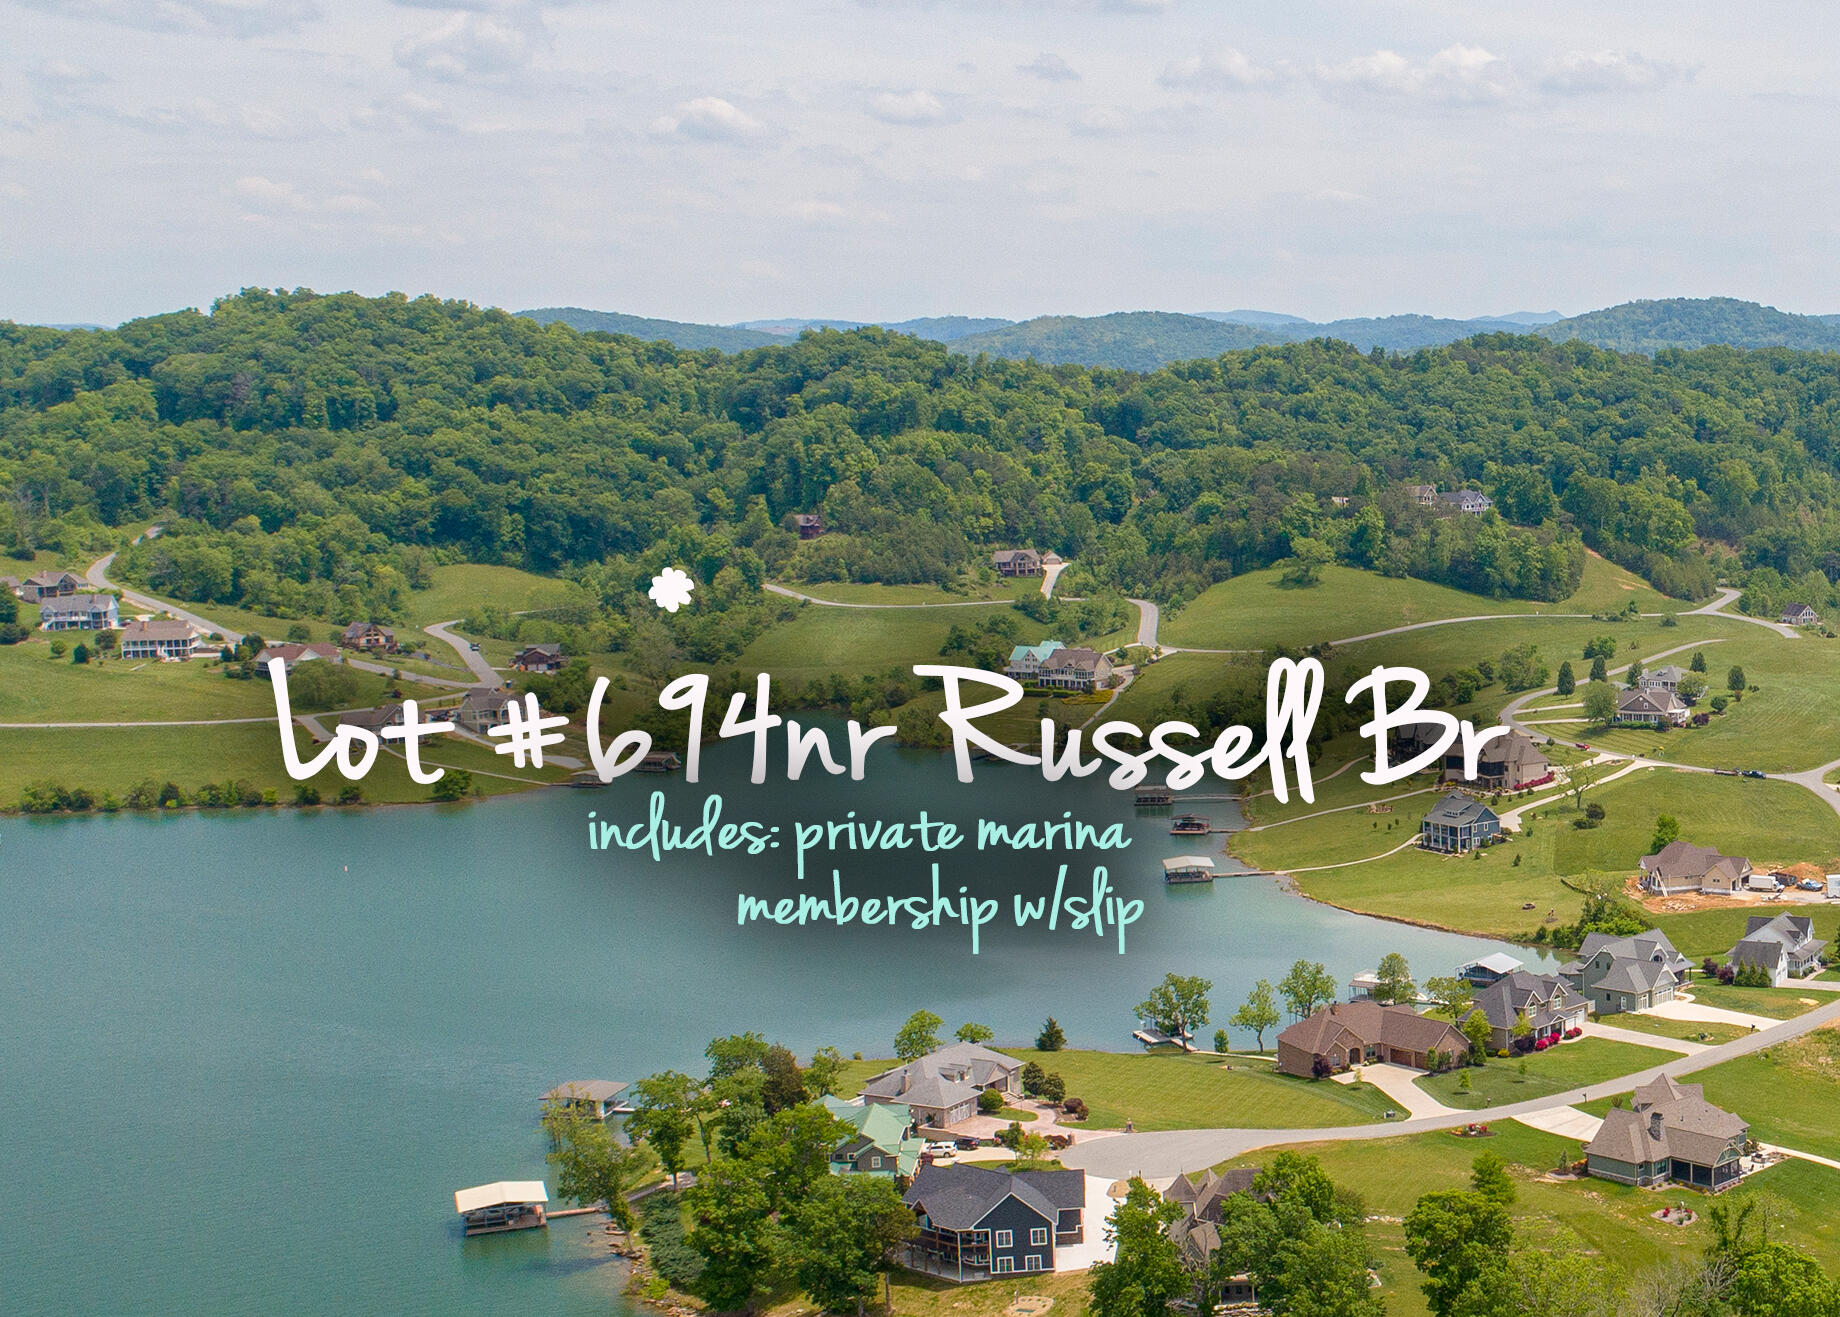 Lot 694NR Russell Brothers Rd: